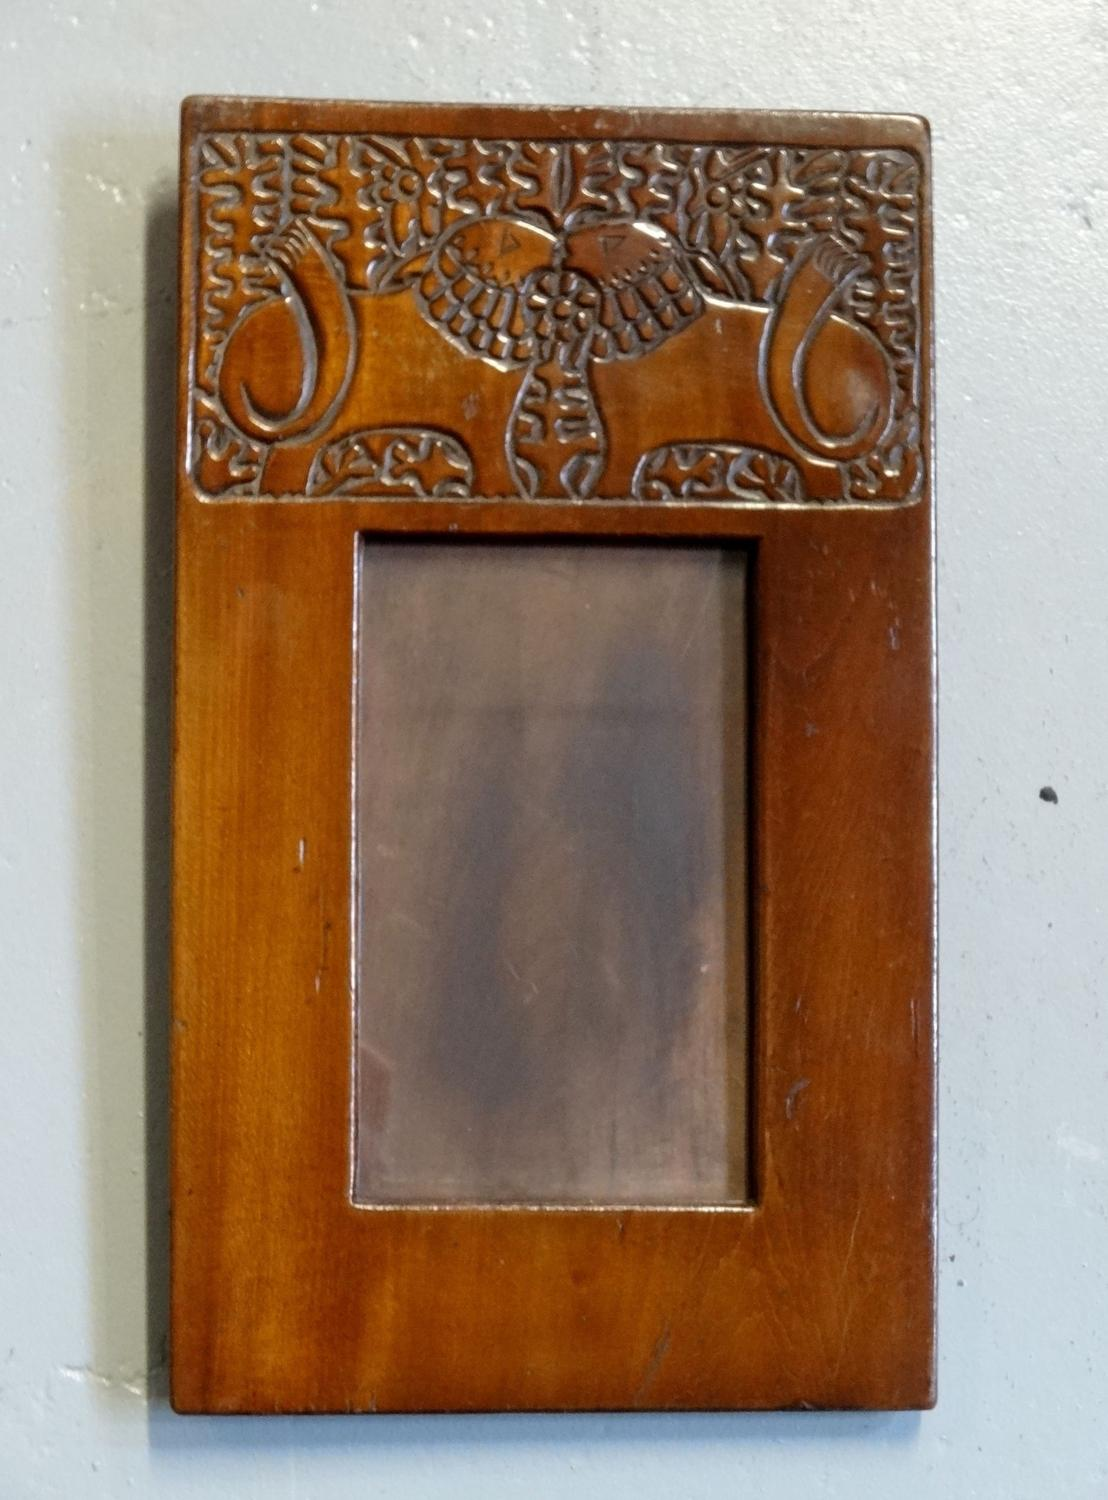 Russian Arts & Crafts photo frame